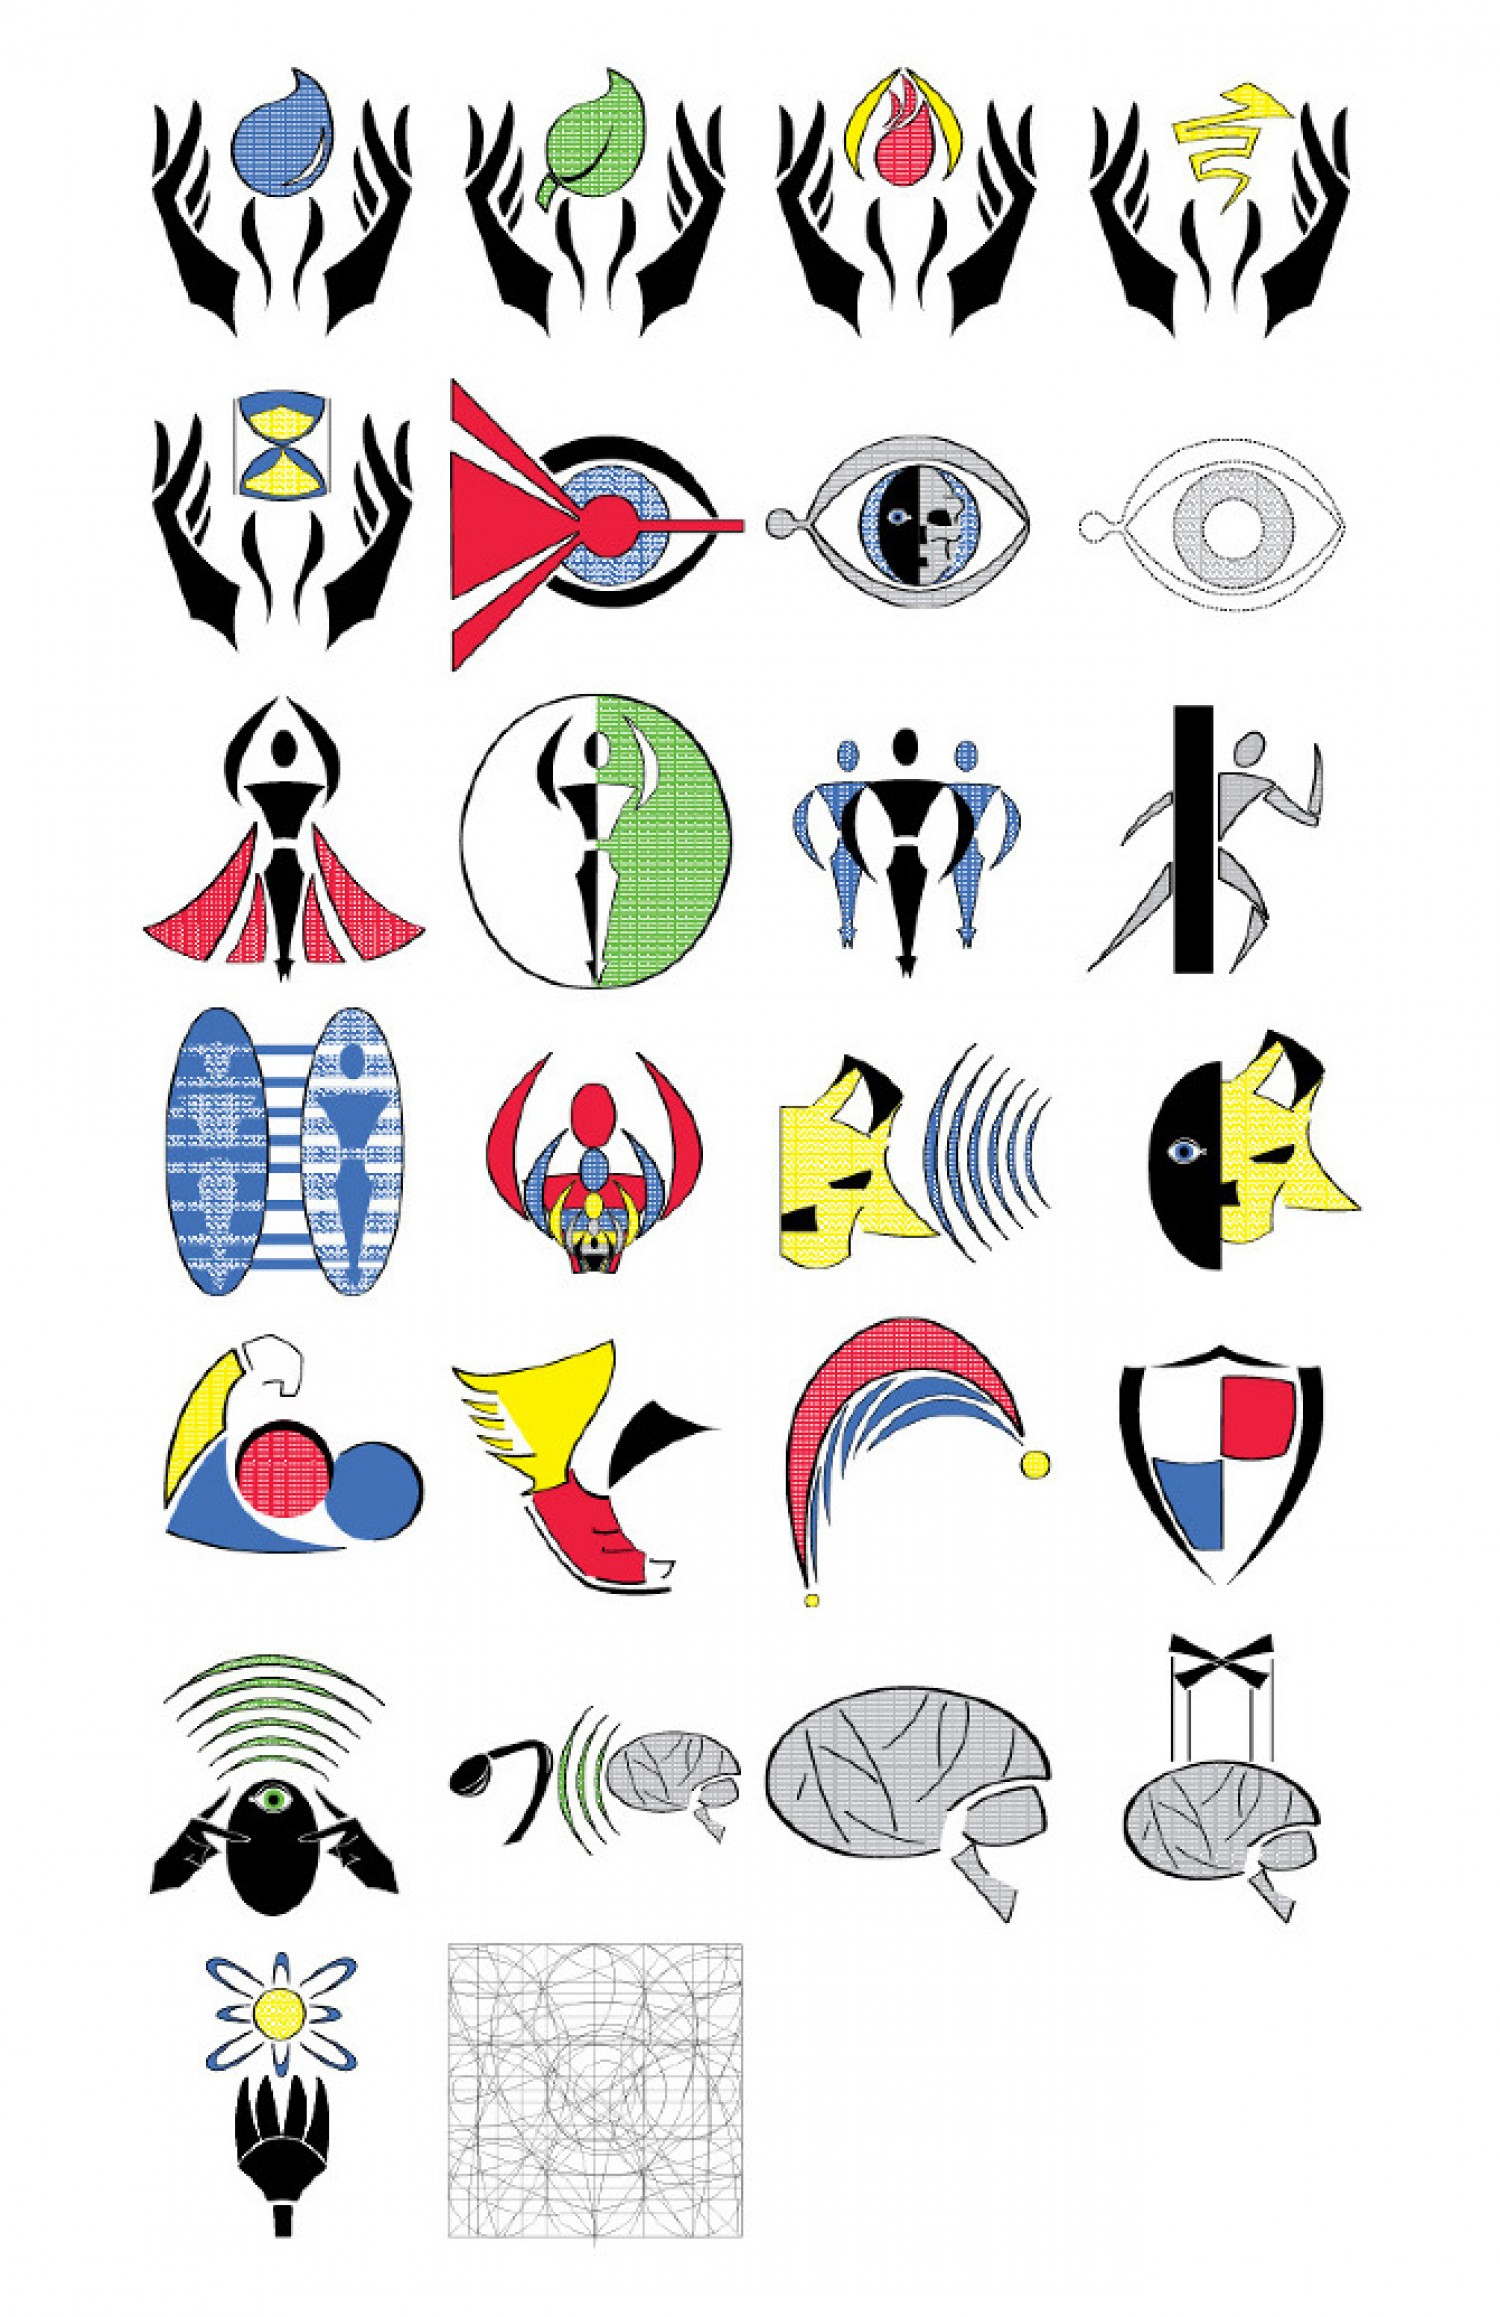 Super powers clipart graphic black and white library Super Power Symbols | Visual.ly graphic black and white library